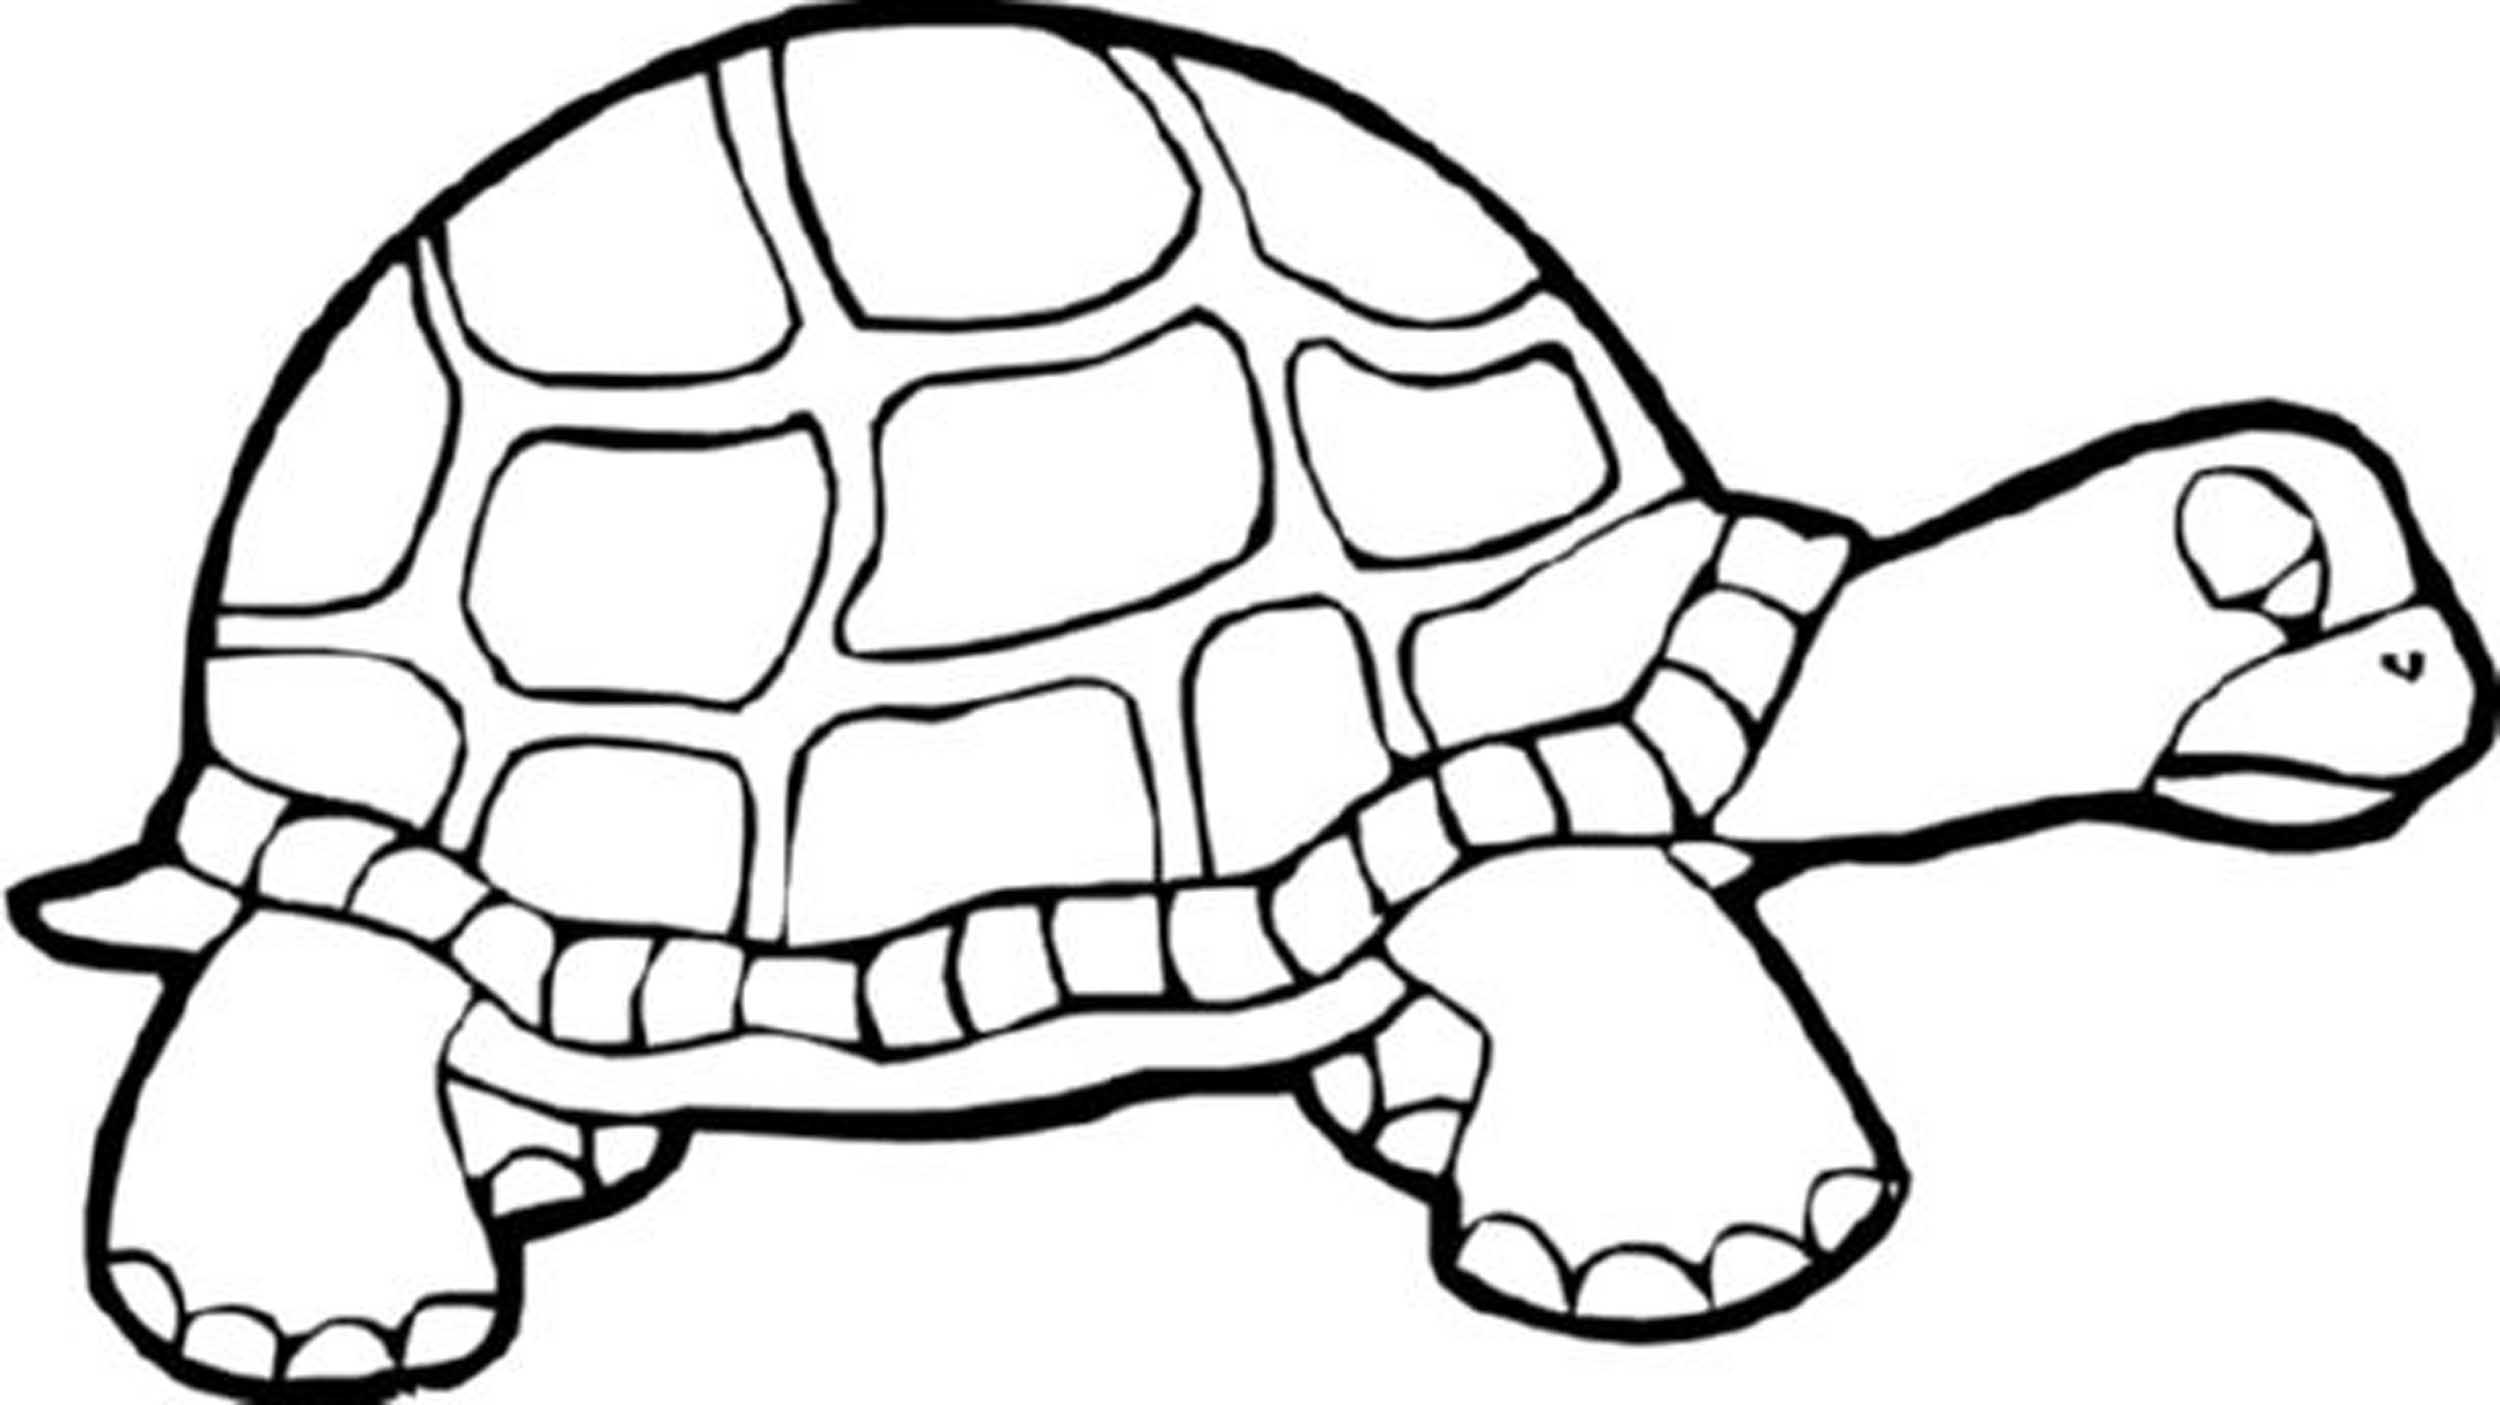 old turtle coloring pages to print